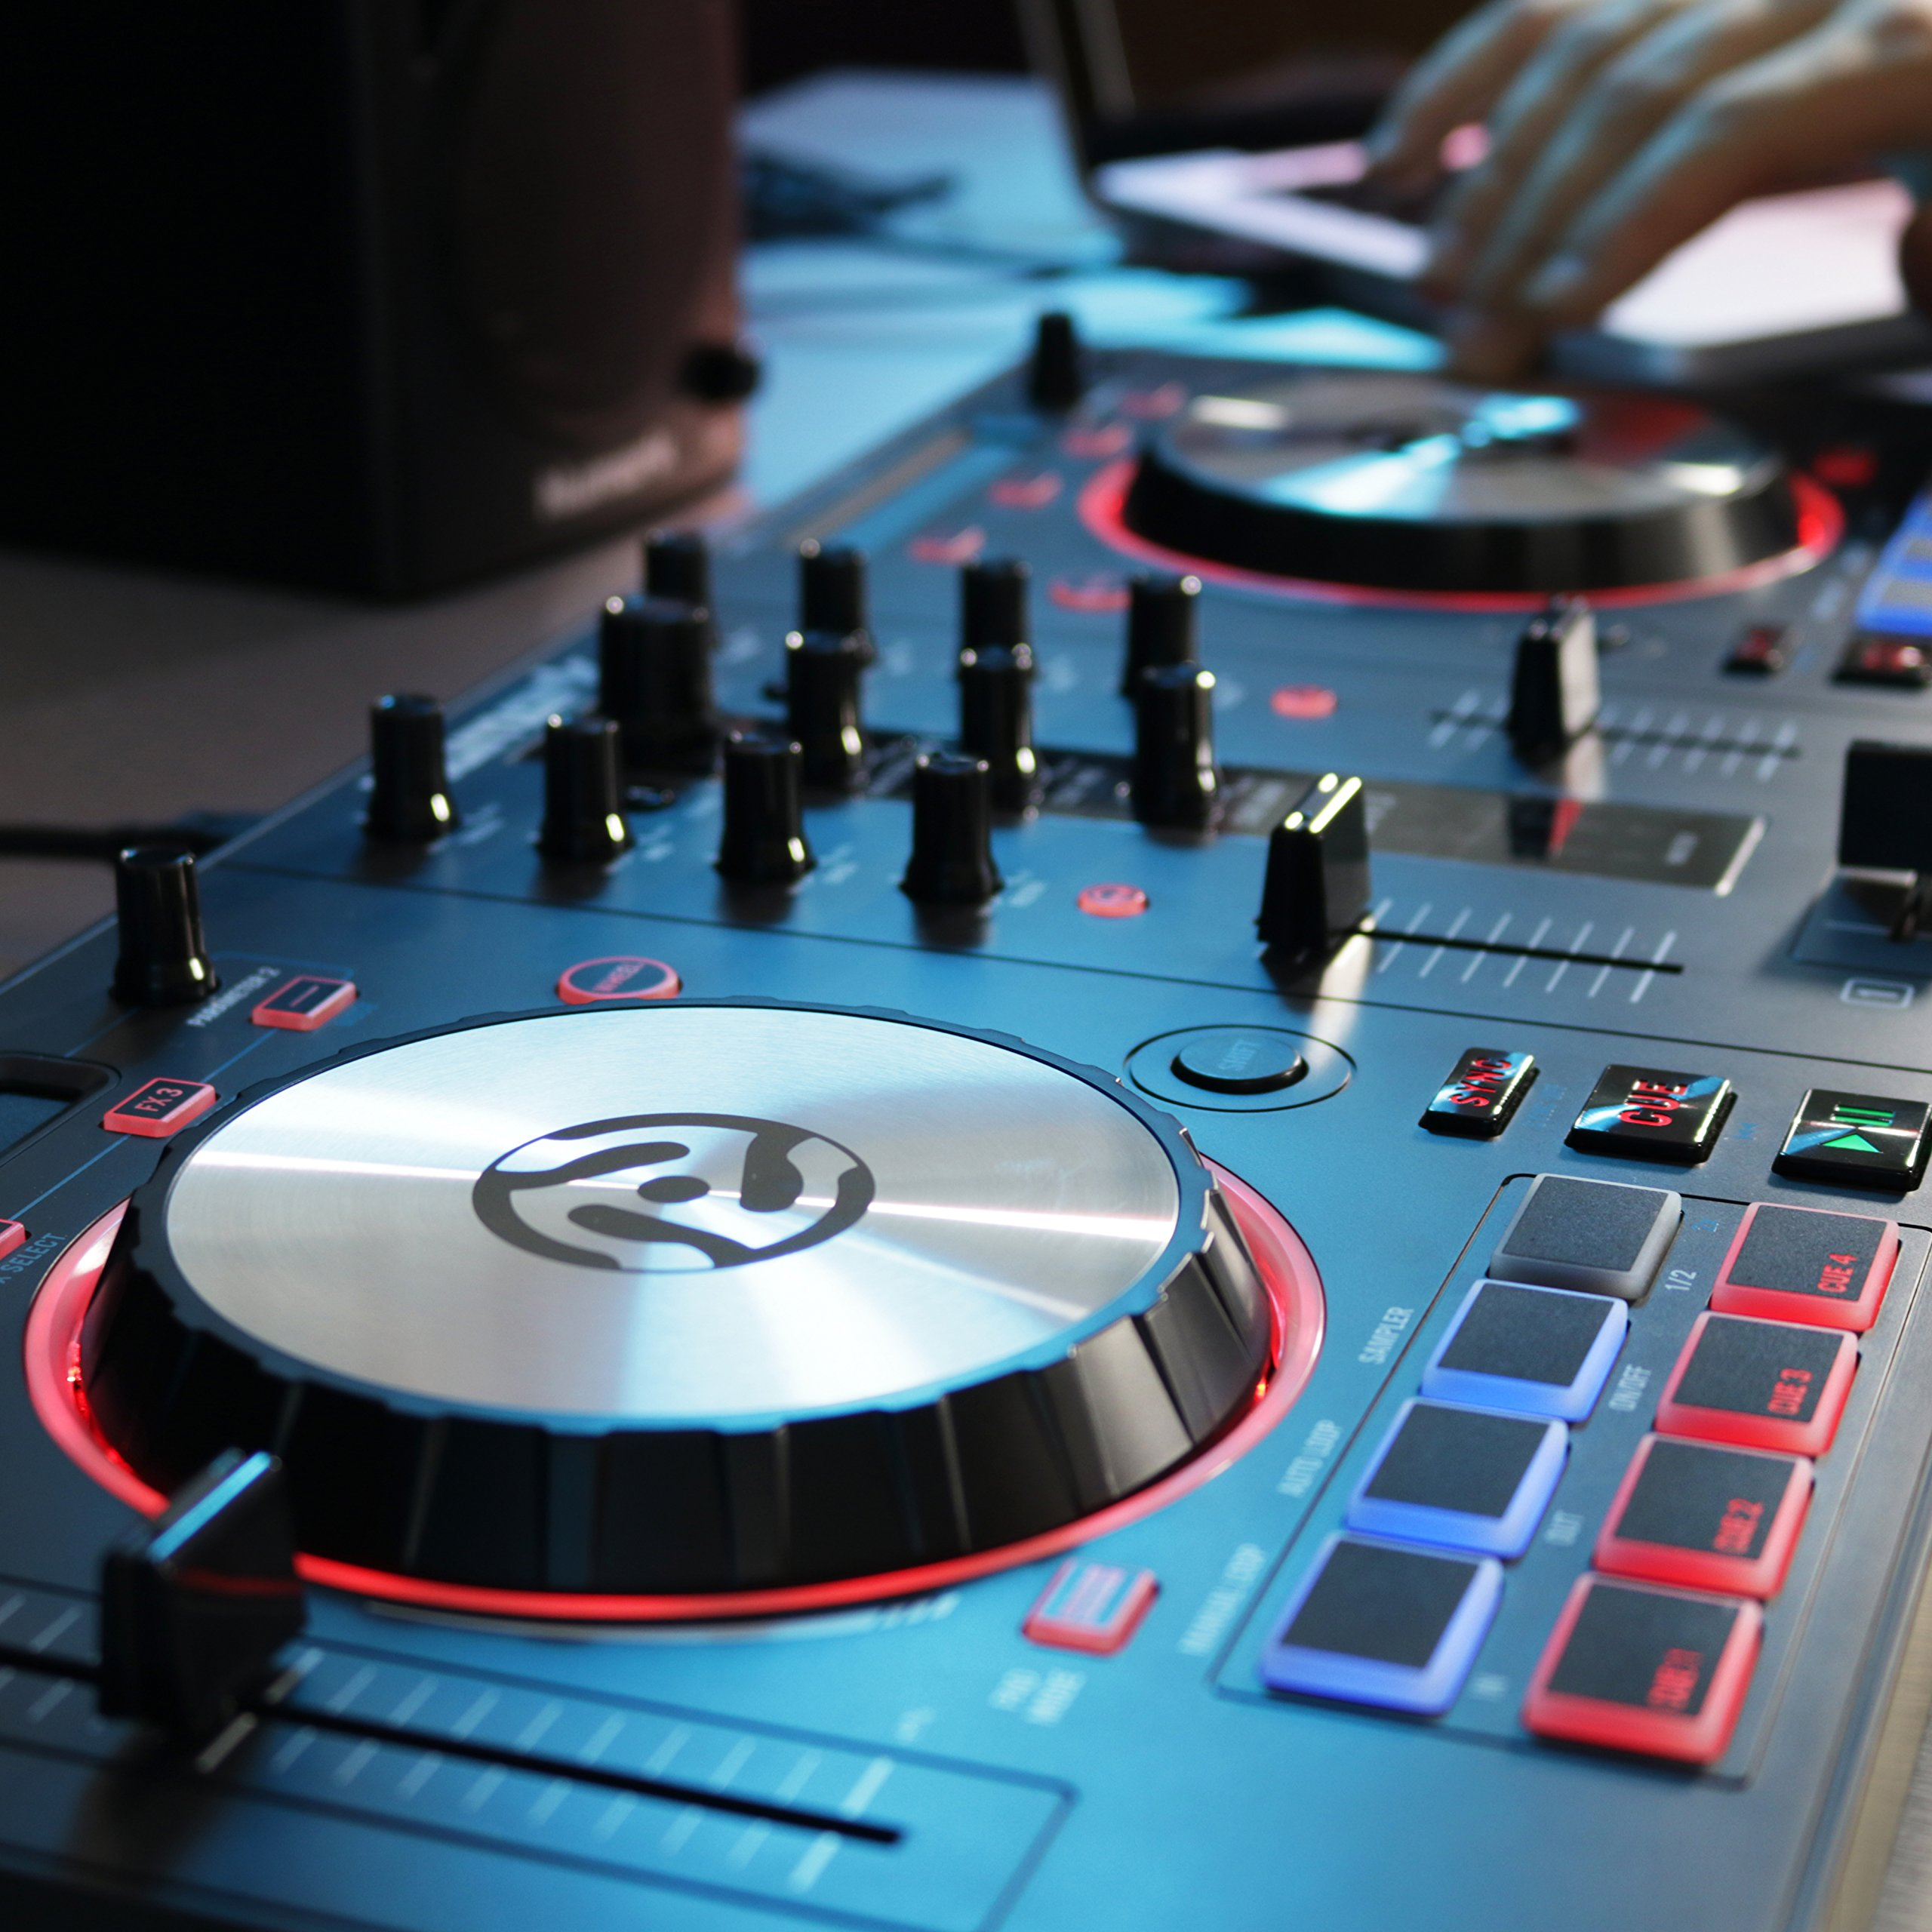 Numark Mixtrack 3 | All-in-one Controller Solution with Virtual DJ LE Software Download by Numark (Image #9)